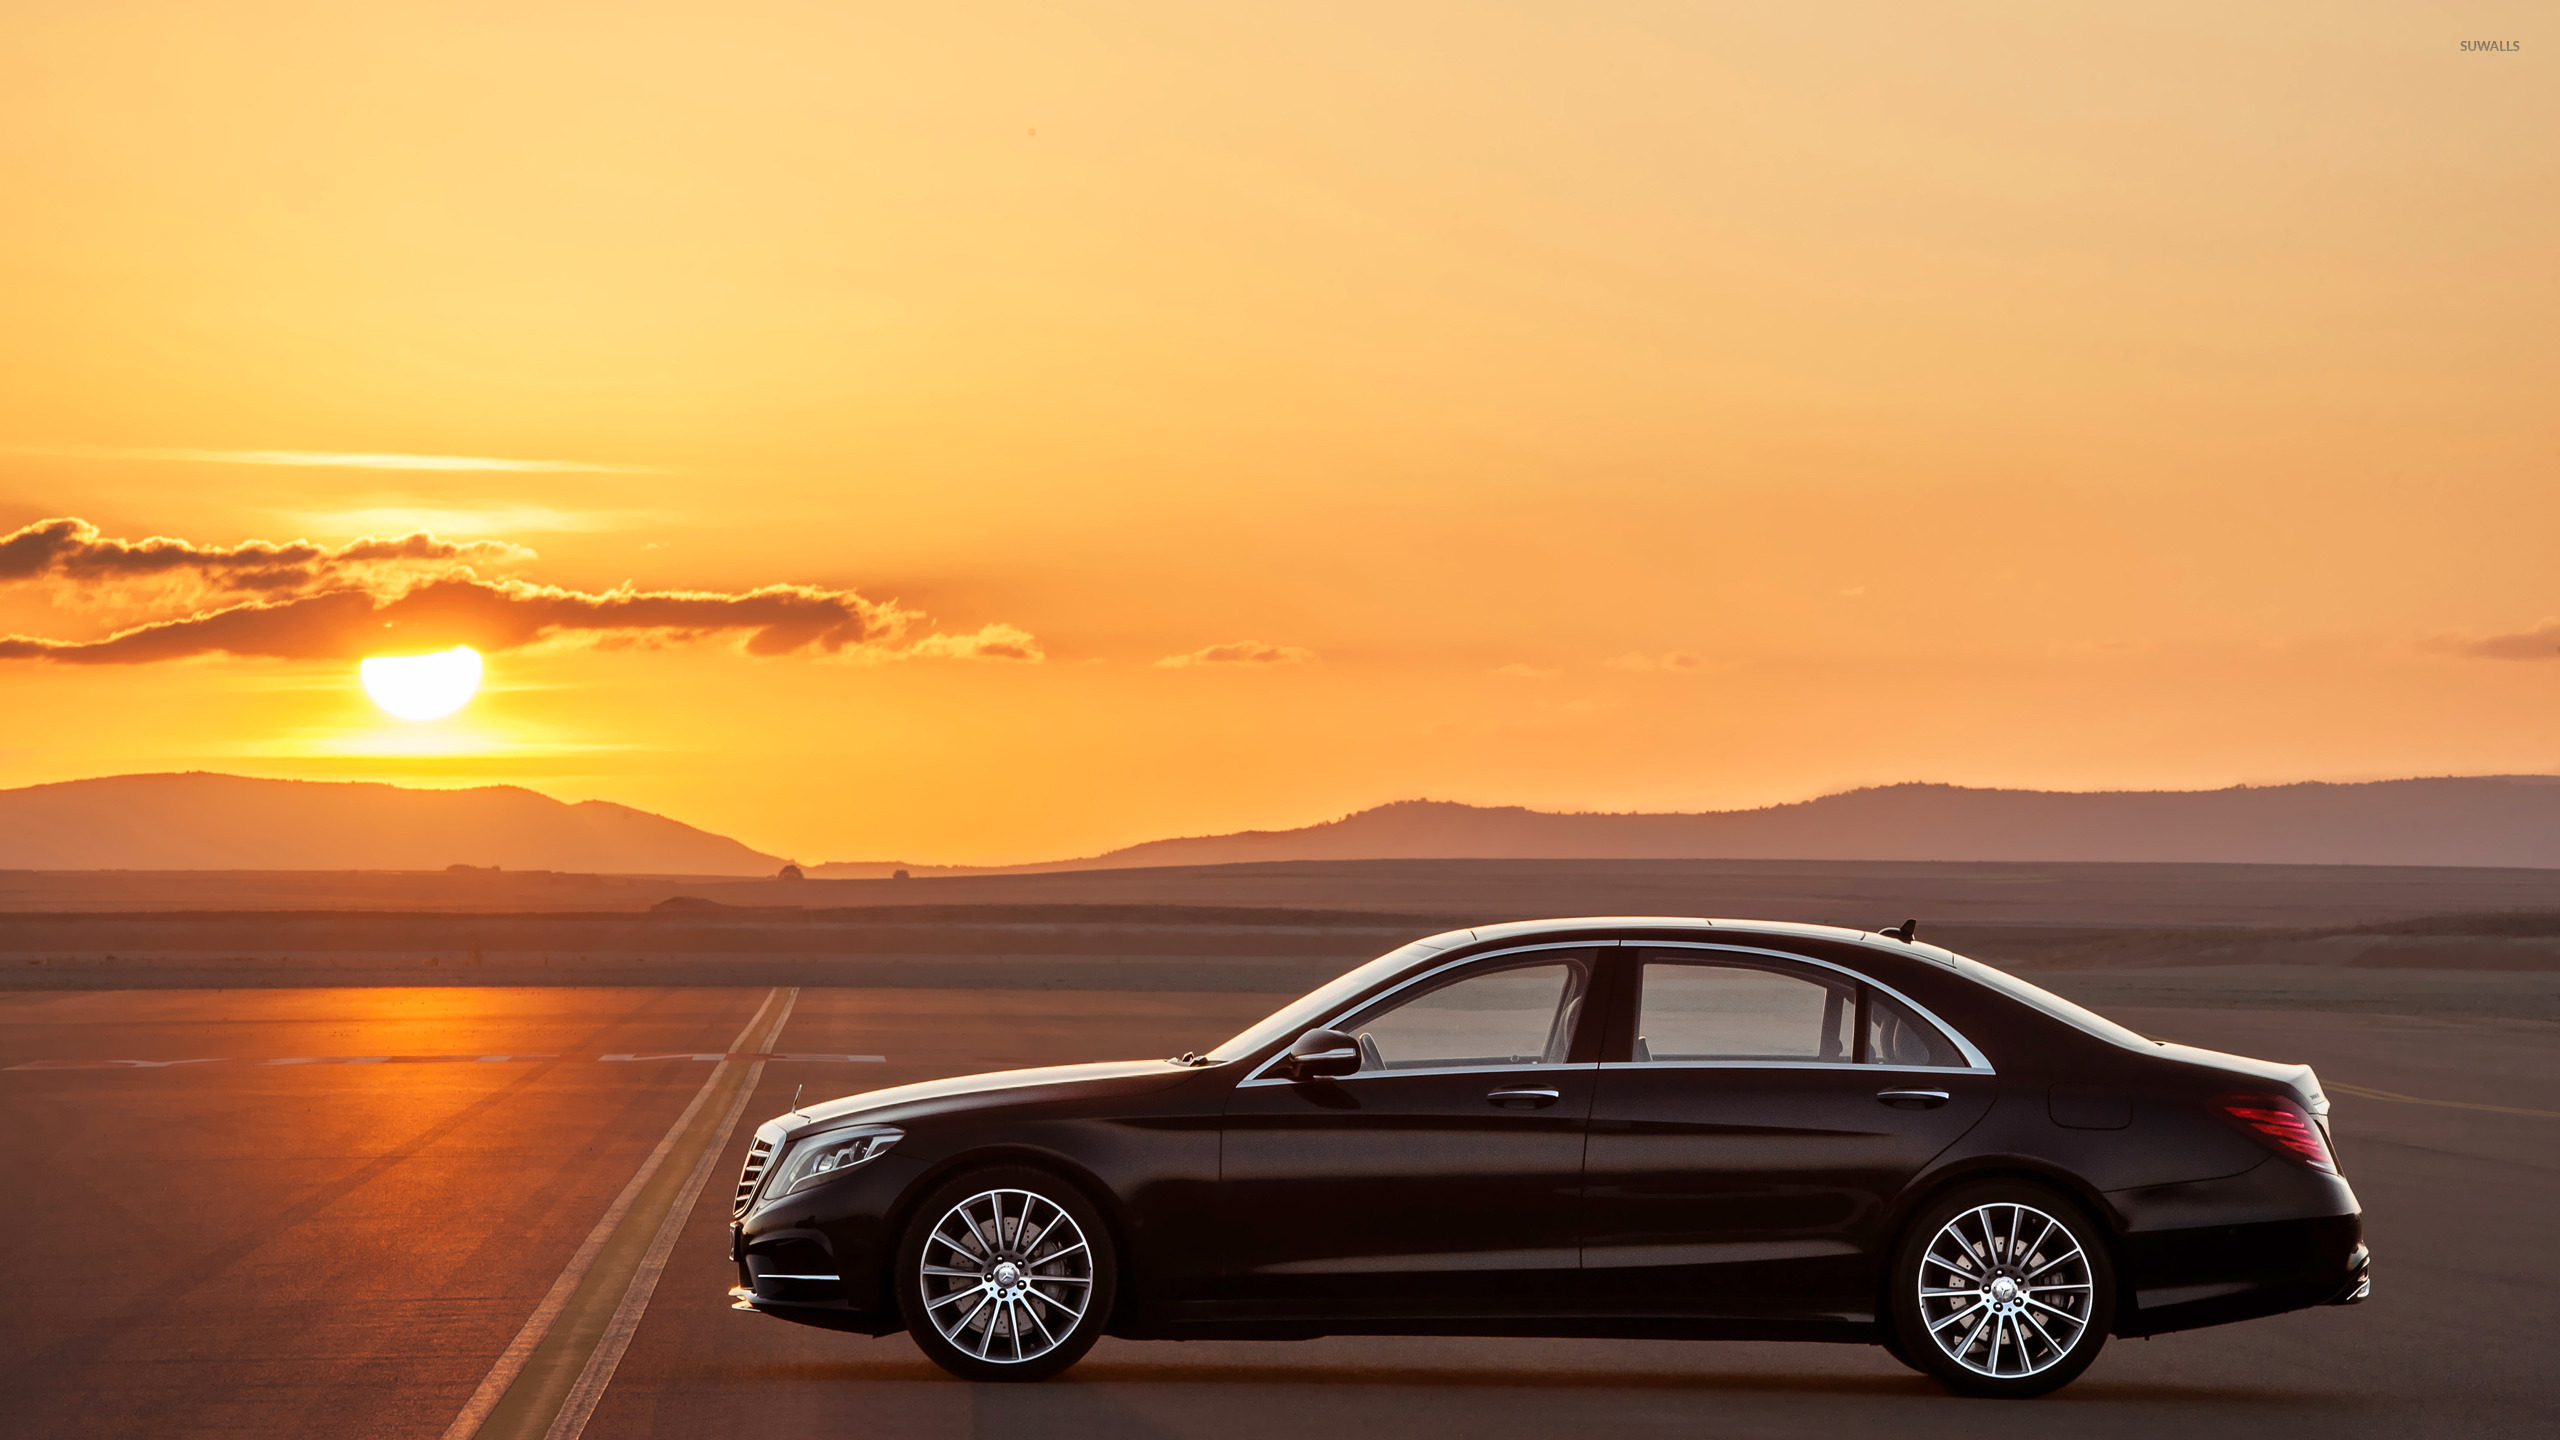 2013 mercedes benz s class 2 wallpaper car wallpapers for 2013 mercedes benz s class s550